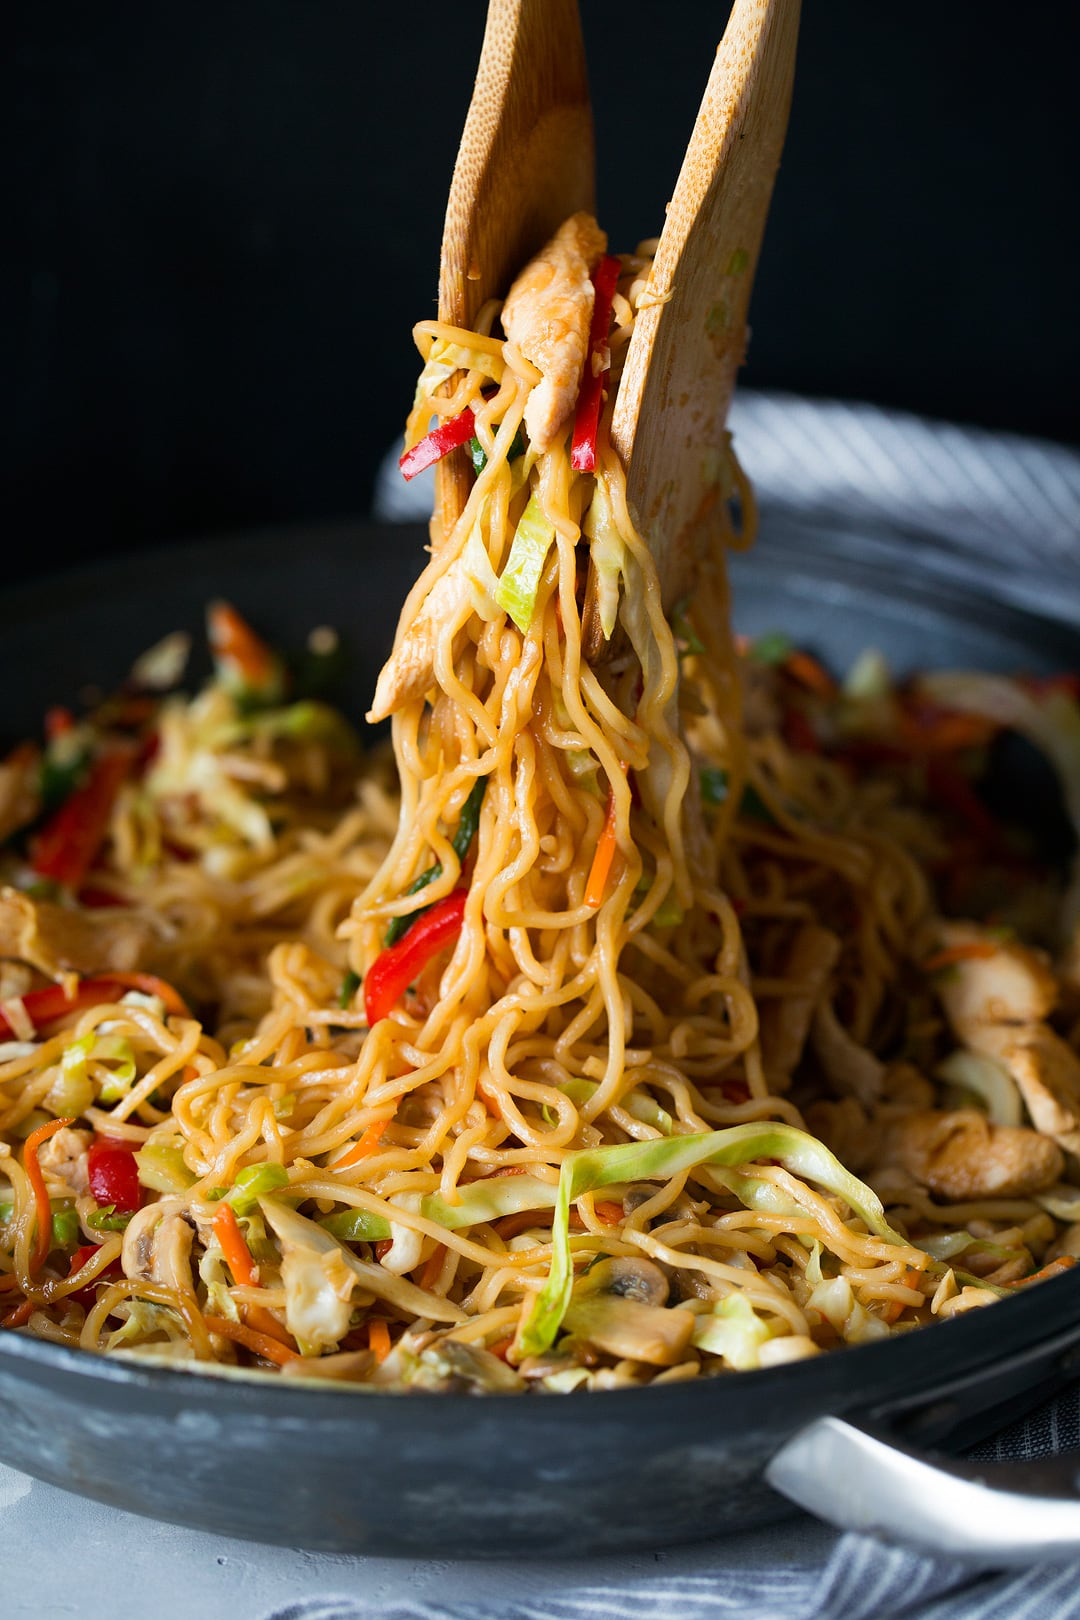 Yakisoba noodles with chicken veggies and Asian sauce.